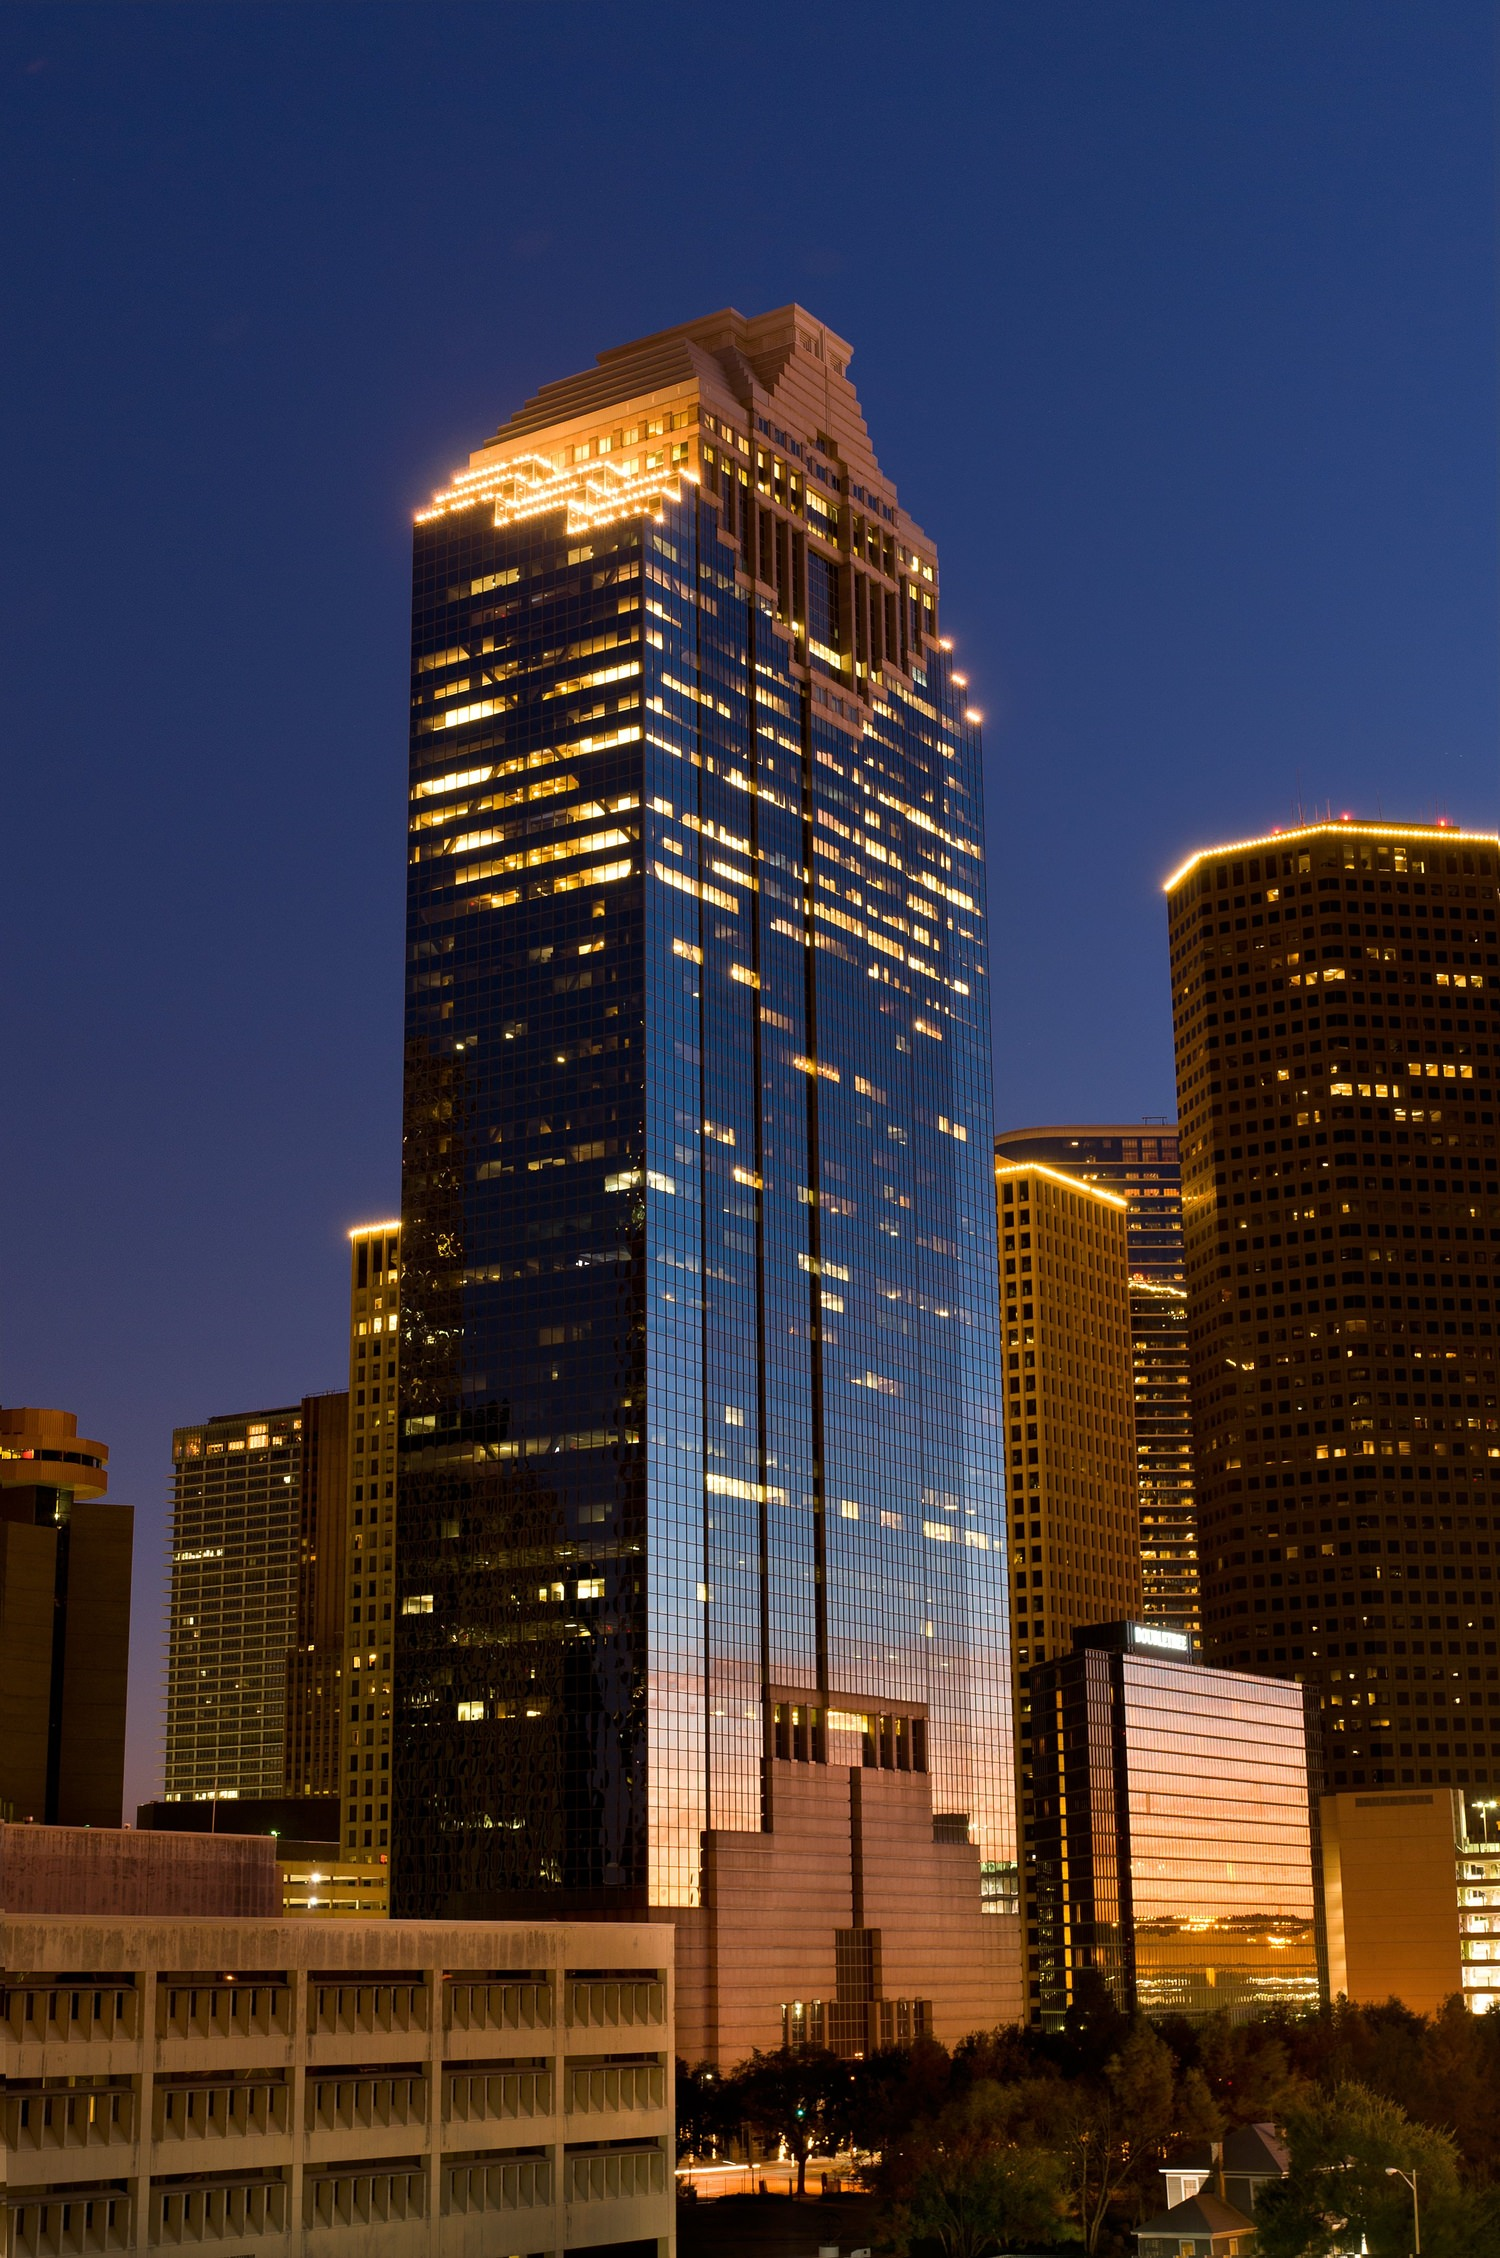 A very tall glass building that is located downtown in a city and the lights are turned on in it at night.Plaza